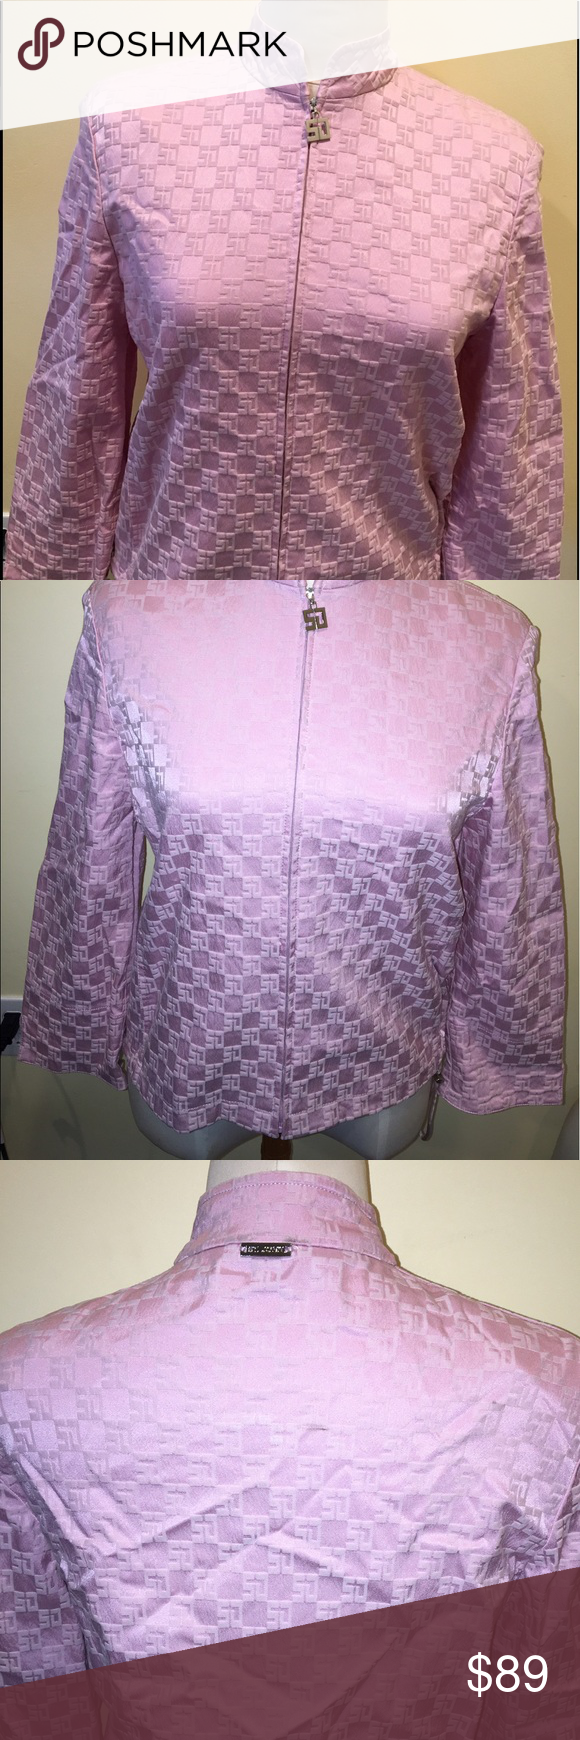 St. John Sport Logo Zip Jacket Timeless St. John long sleeve Zip Jacket in pink | matching bottoms sold separately but can be discounted when purchased as a bundle | I'm willing to negotiate price | size: small  retail price indicates total set St. John Jackets & Coats Jean Jackets